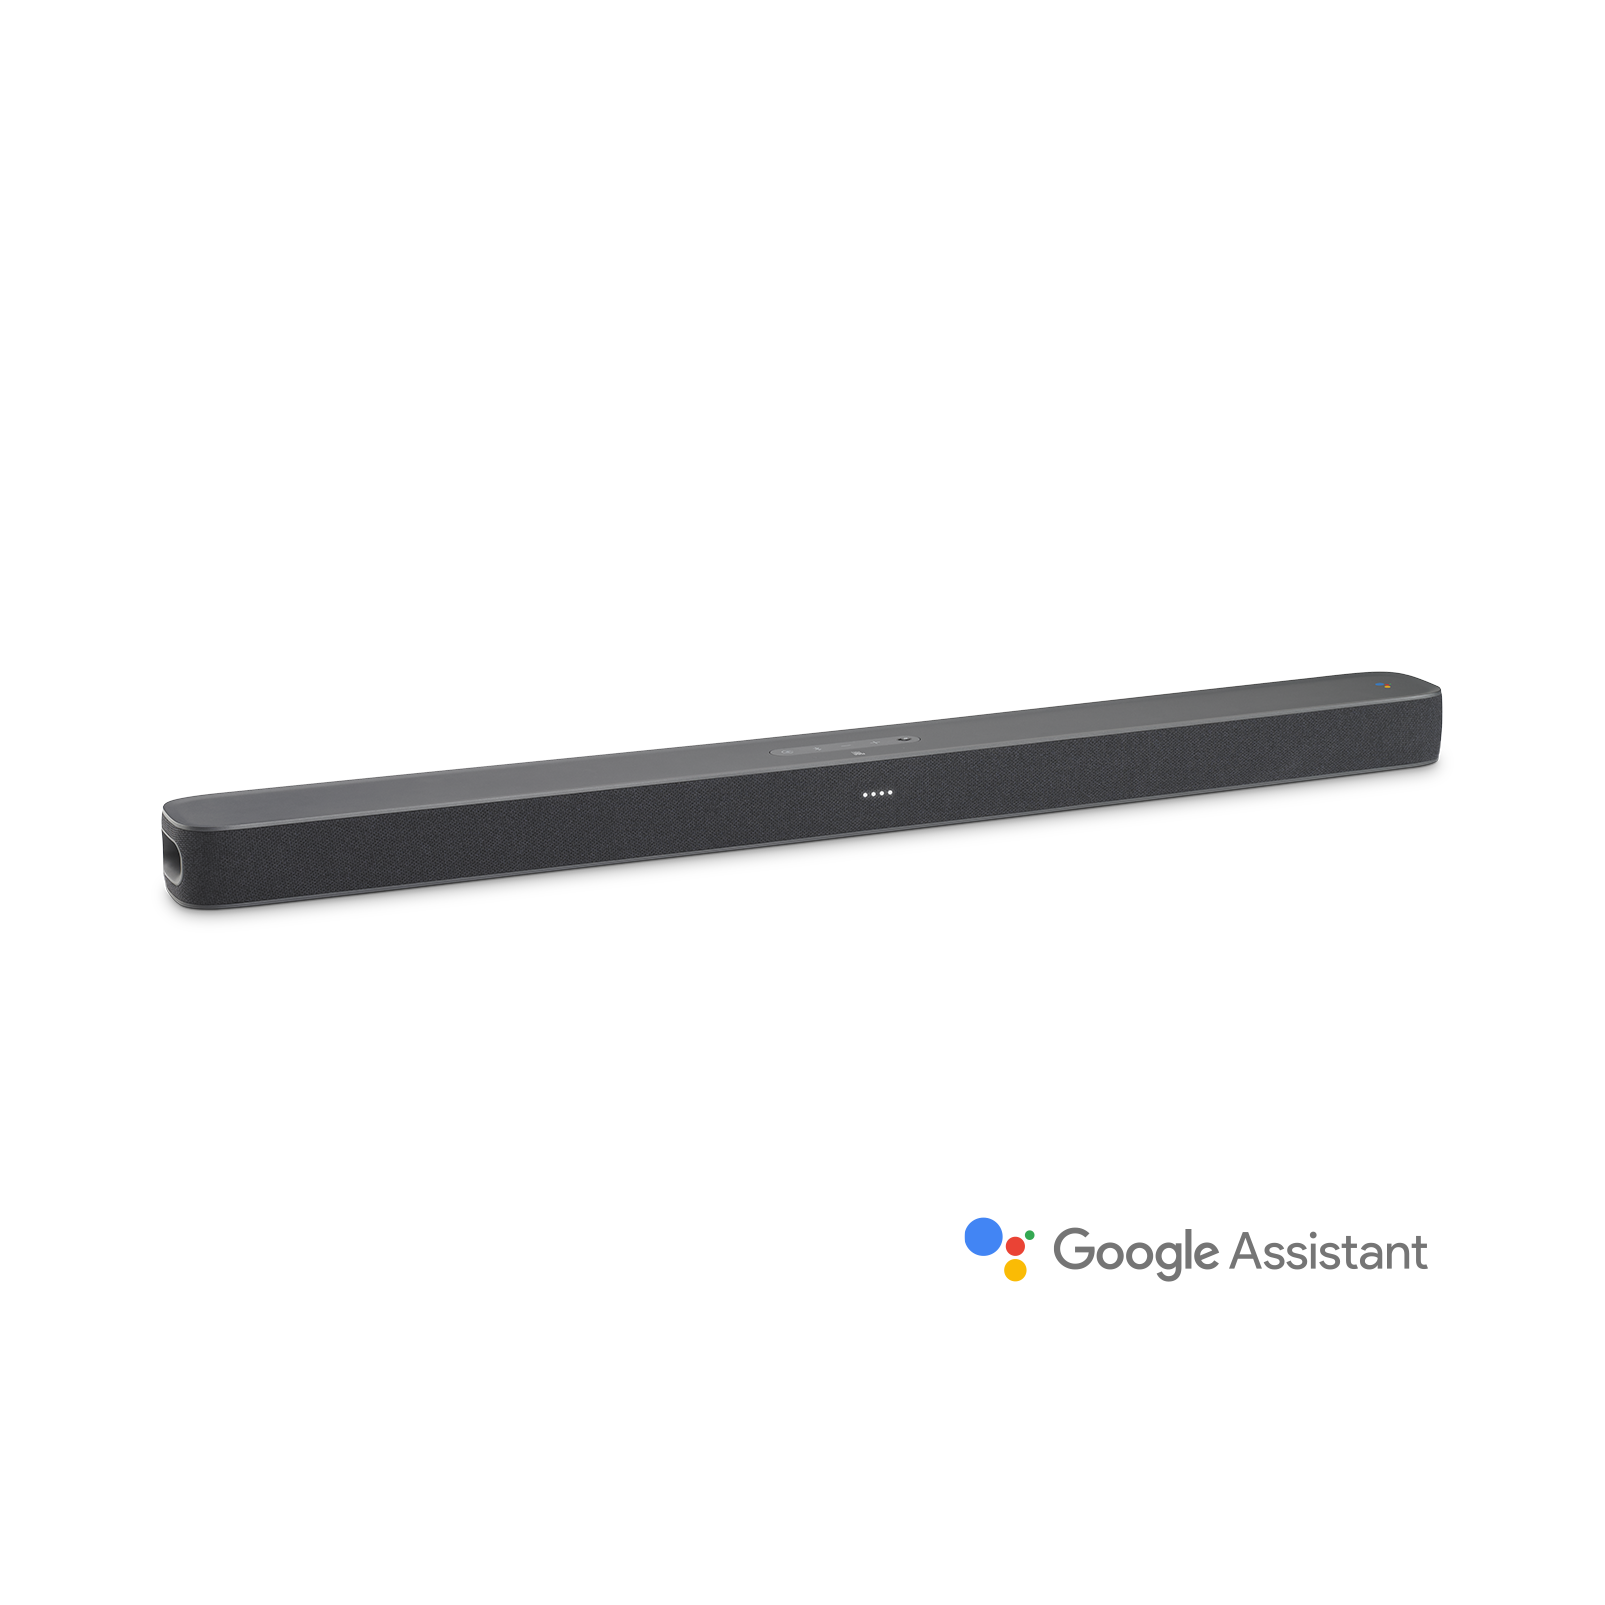 JBL LINK BAR - Grey - Voice-Activated Soundbar with Android TV and the Google Assistant built-in - Hero